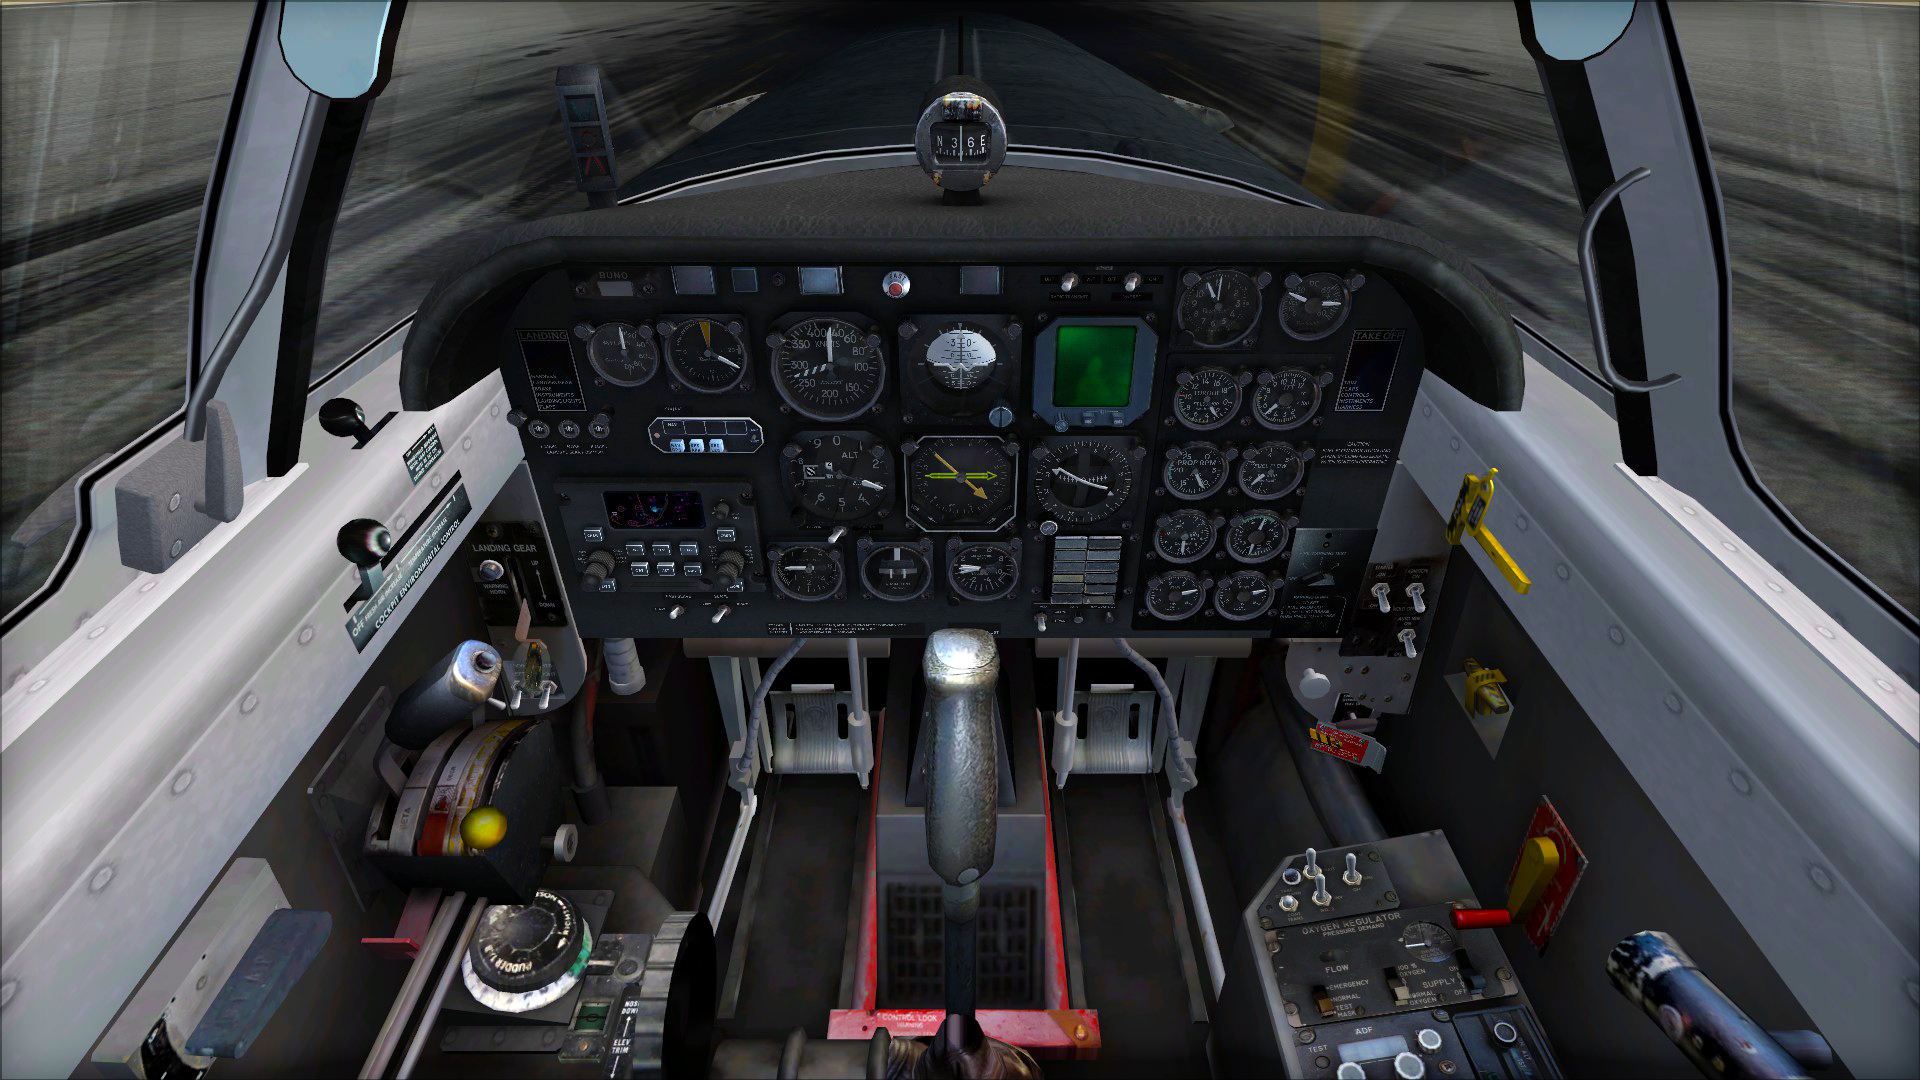 Jan 12, 2017 Beechcraft T-34C Turbo Mentor out now for FSX